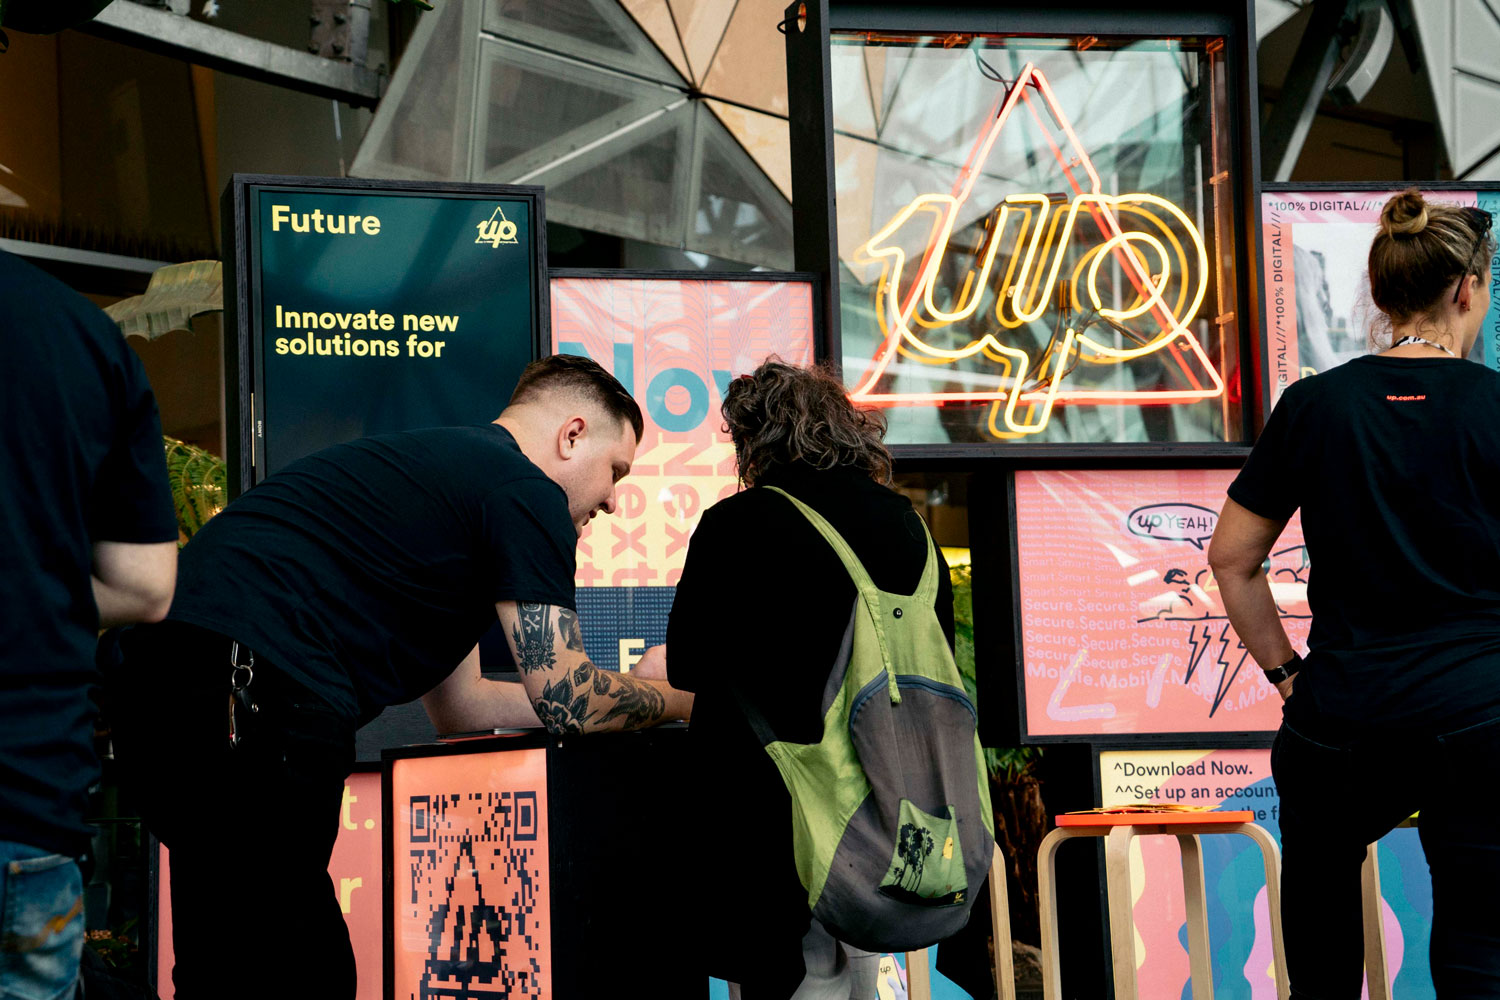 Pause Fest to celebrate 10 years of Australian innovation with stellar tech titans: 5-7 February, 2020 at Melbourne Convention Exhibition Centre